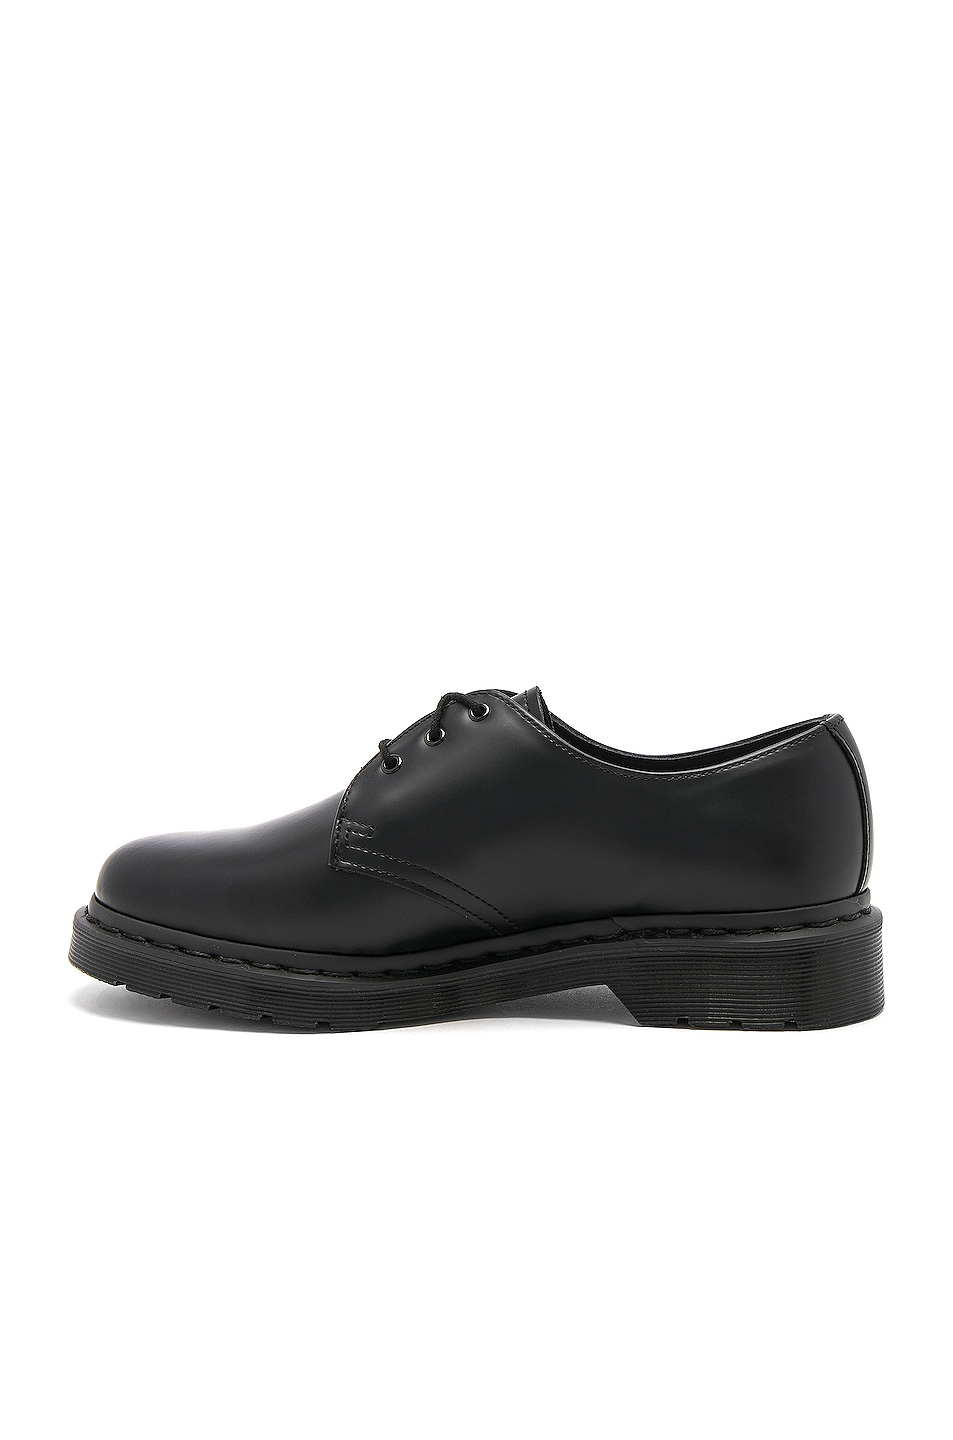 Image 5 of Dr. Martens 1461 3 Eye Gibson in Black Mono